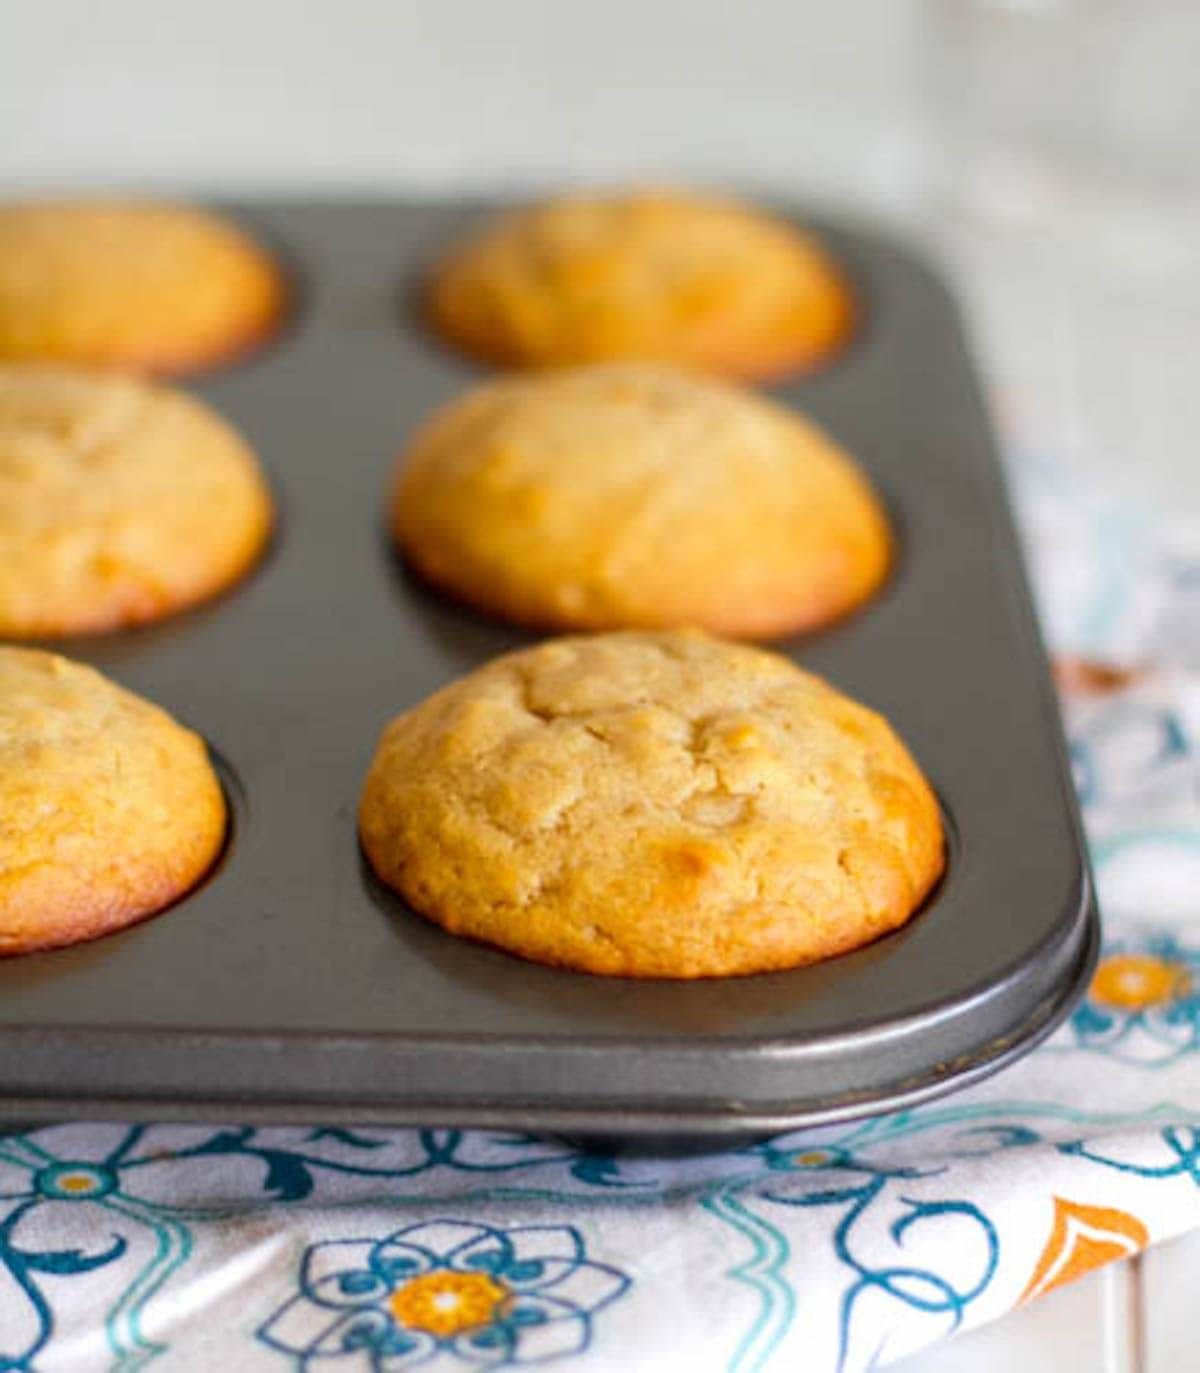 These peanut butter and honey muffins are easy to make and so delicious for breakfast or a snack. Fluffy, light, and perfect peanut butter honey flavor! | pinchofyum.com